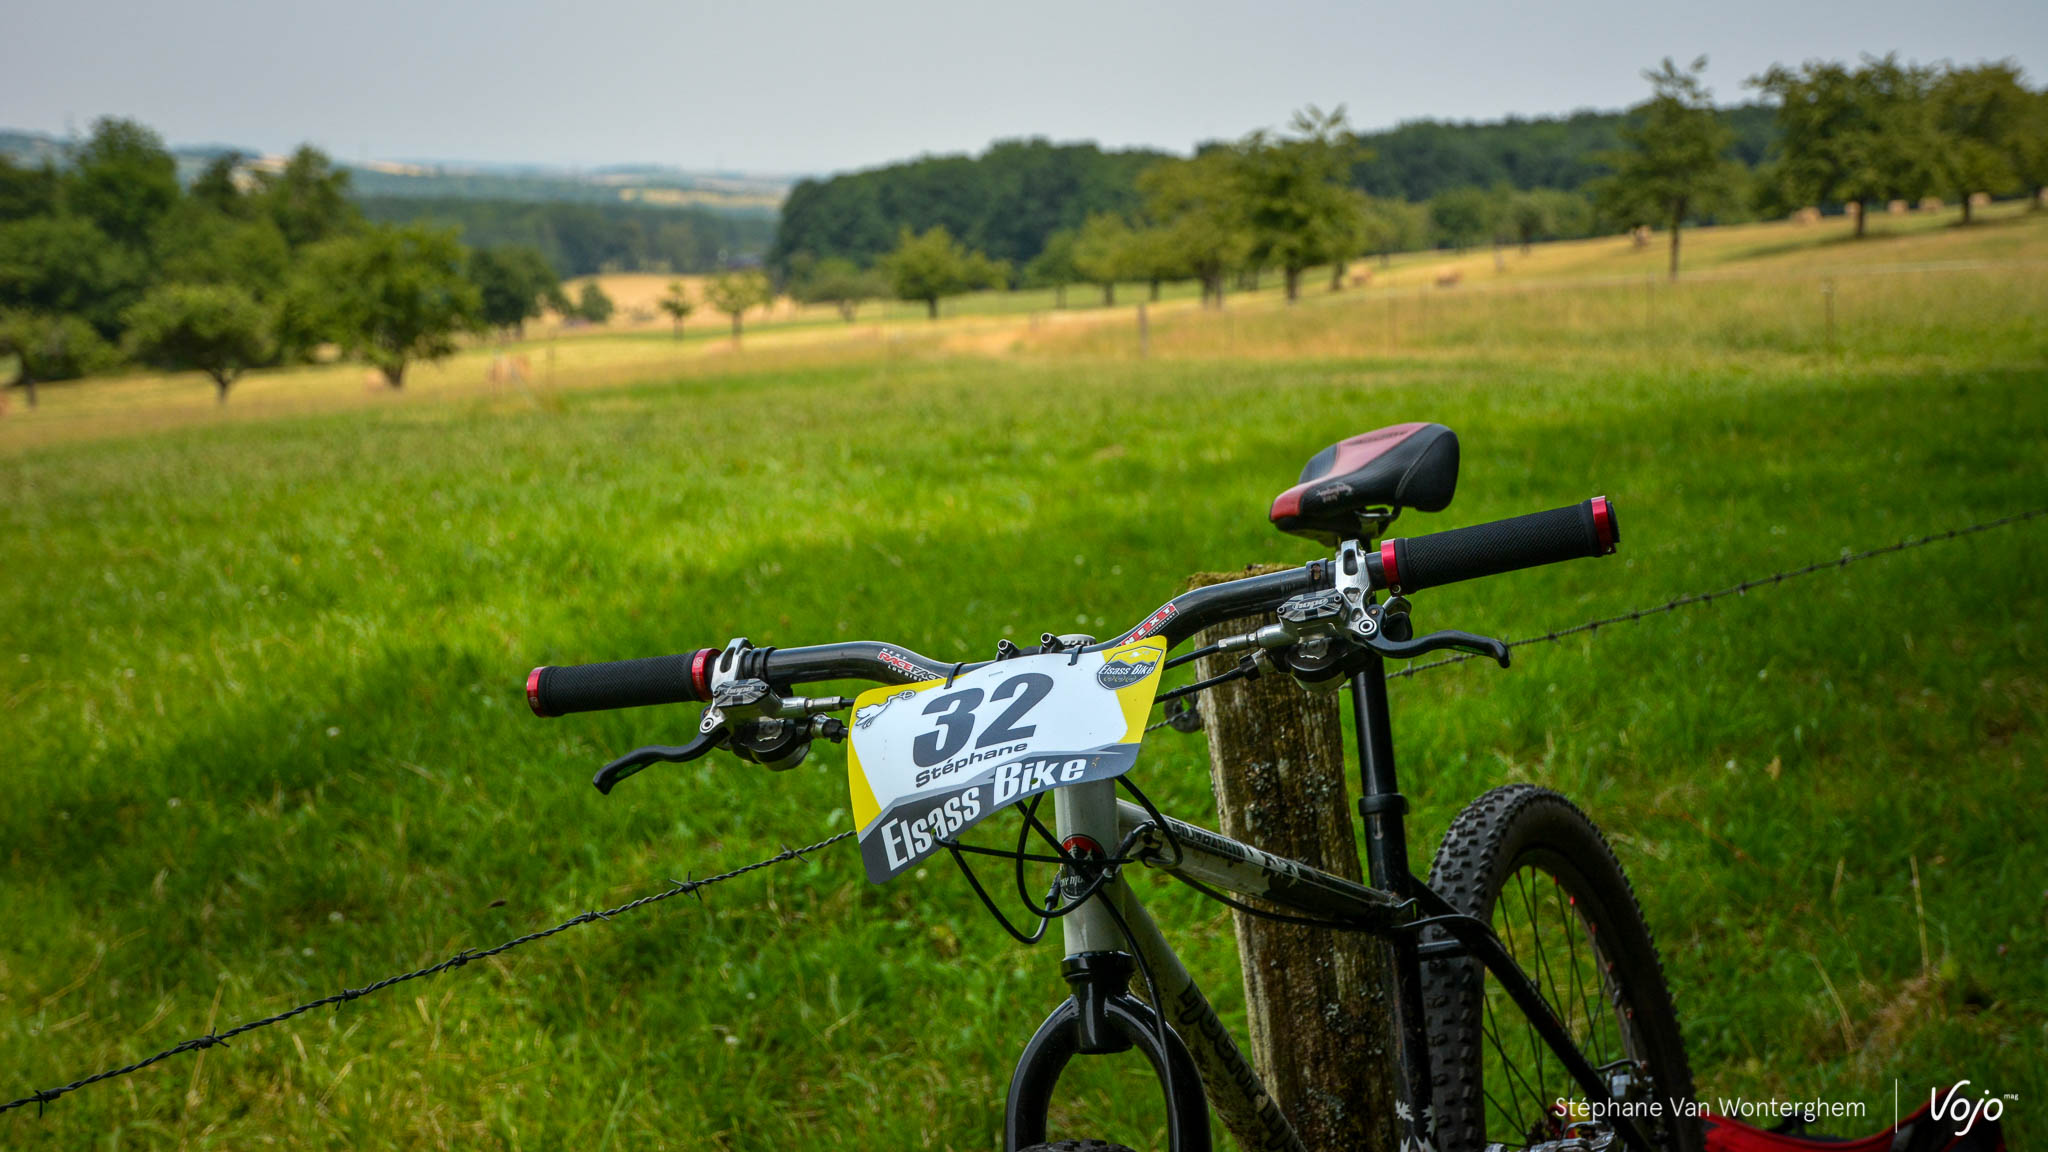 Elsass_Bike_Copyright_SVW_VojoMag-1-3